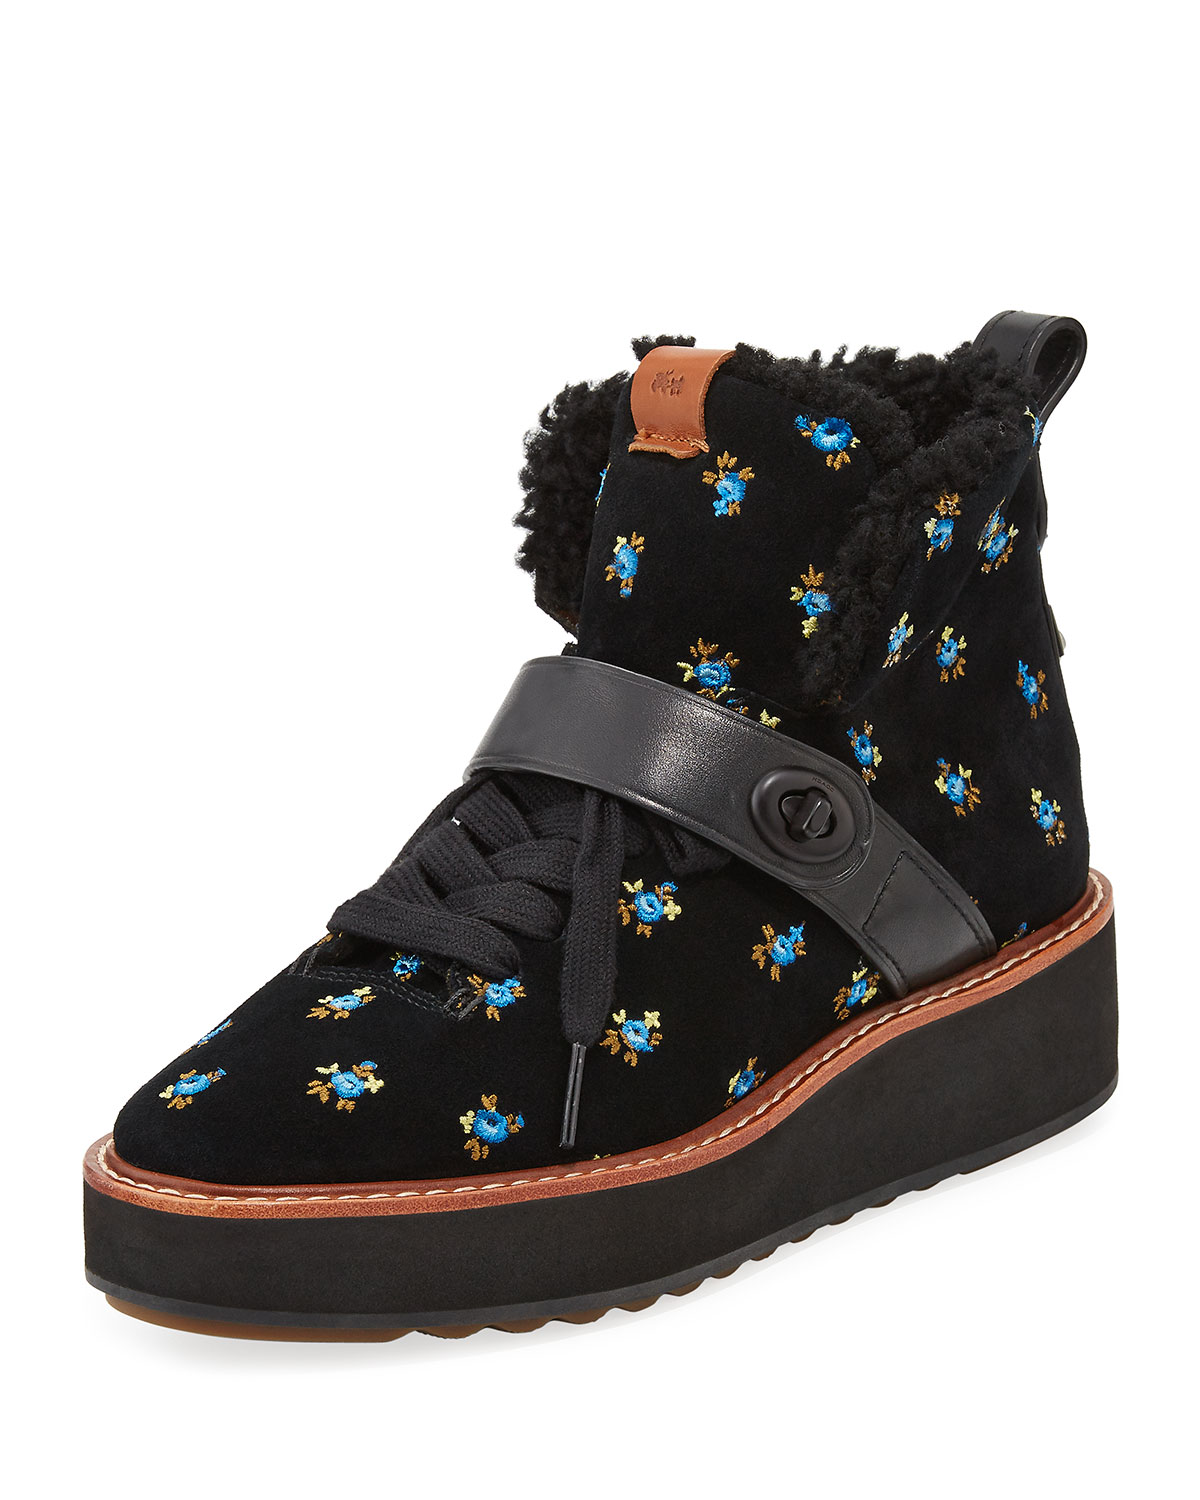 a3706a39057 Urban Hiker Prairie Embroidered Suede Boot